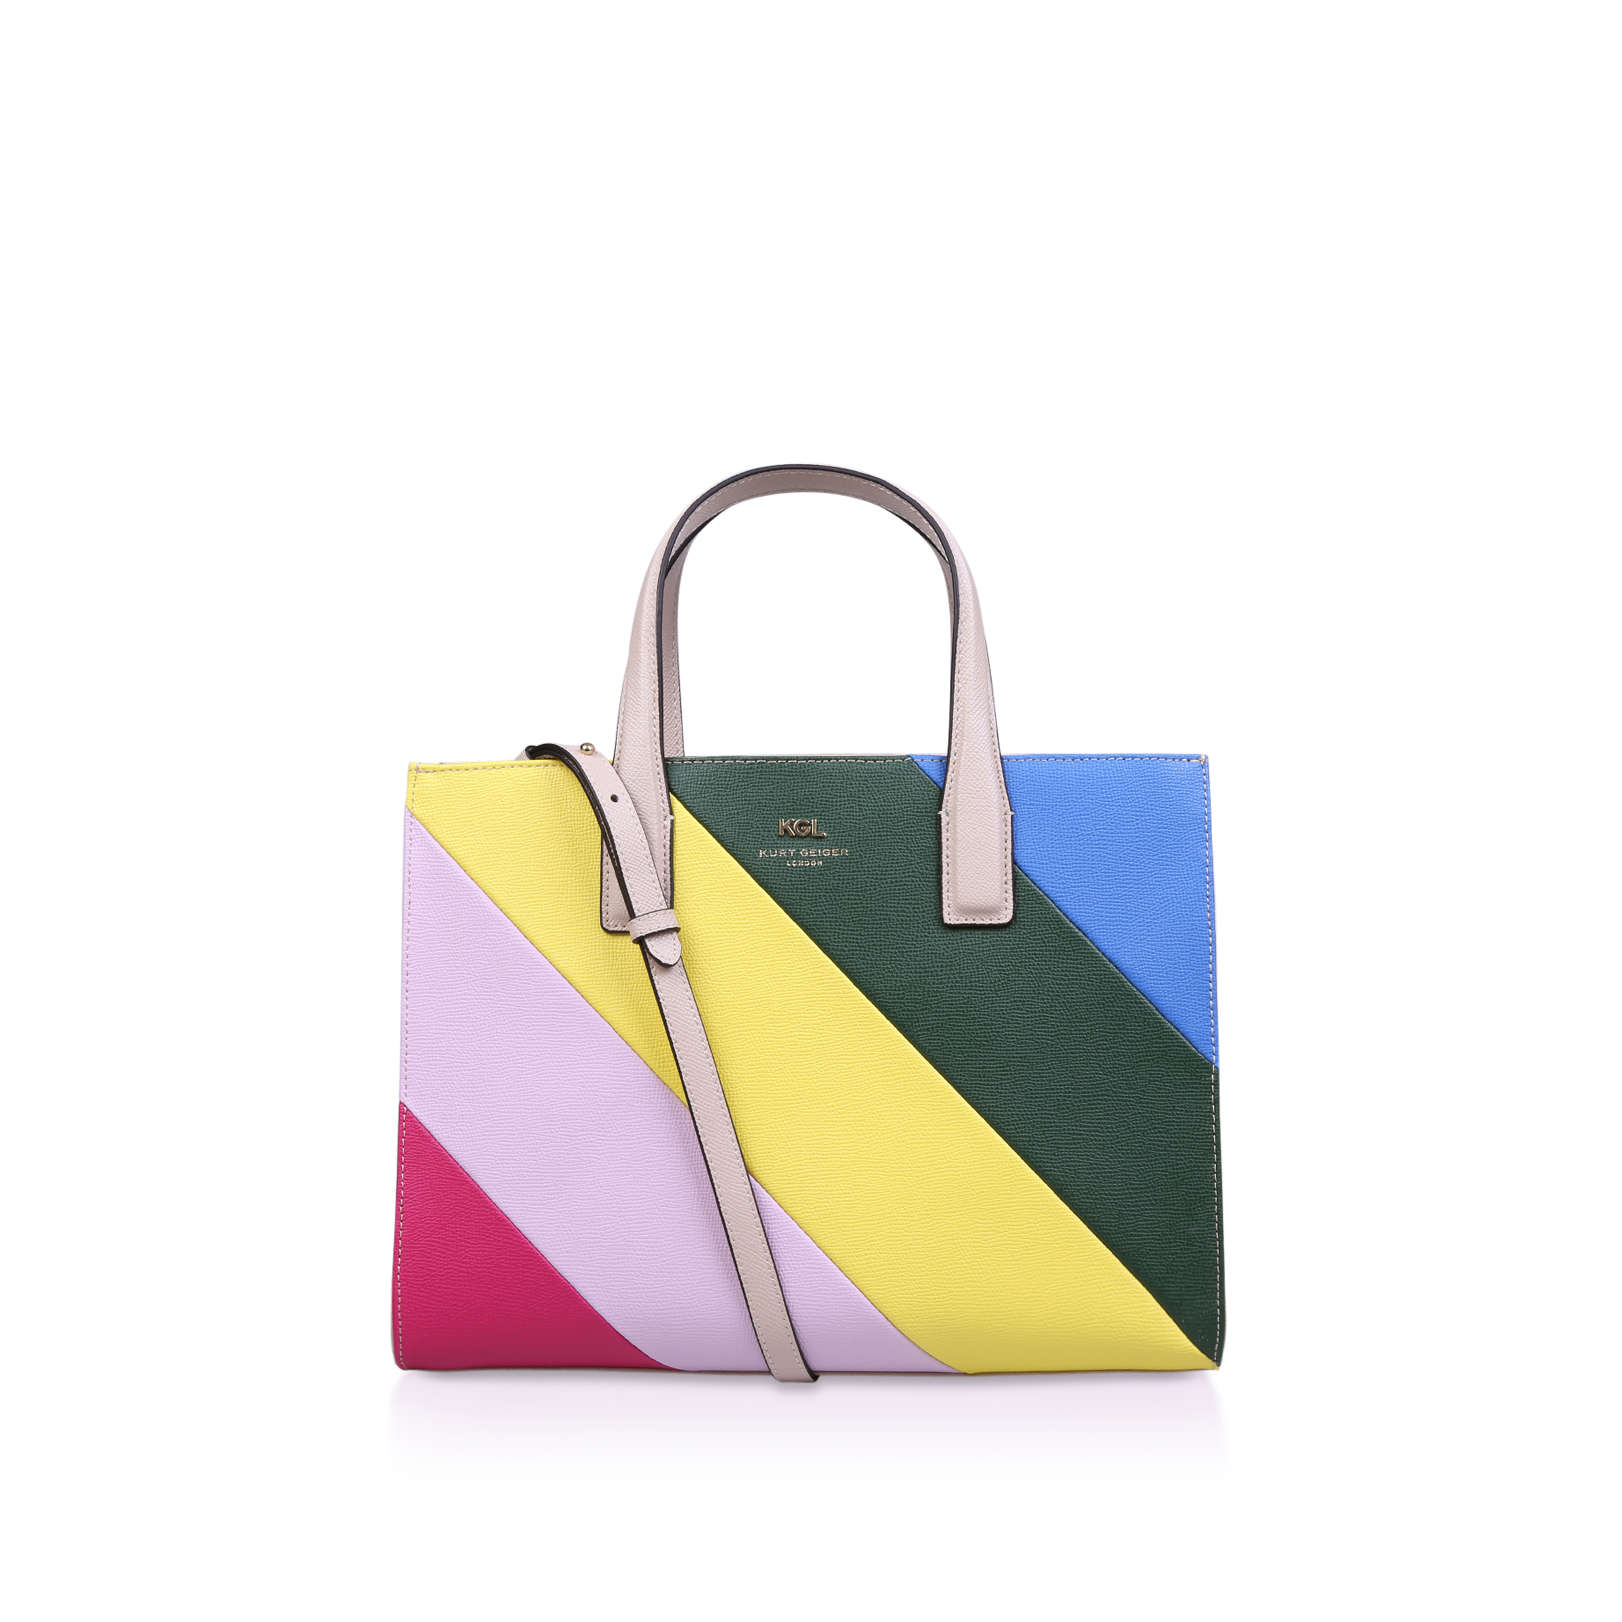 NEW SAFF LONDON TOTE